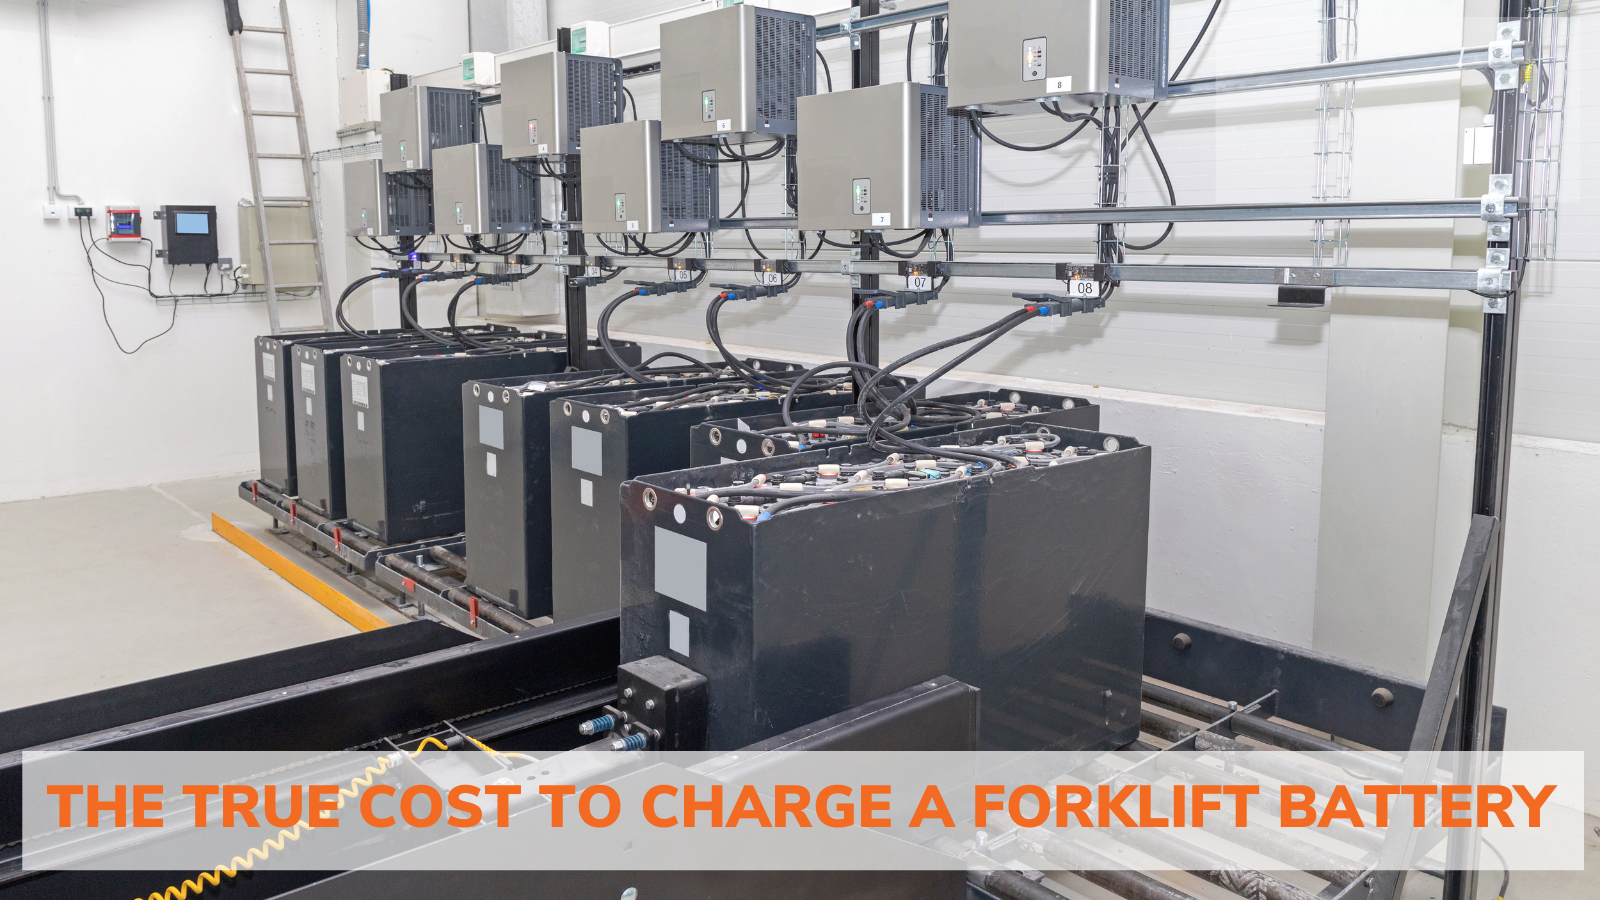 THE TRUE COST TO CHARGE A FORKLIFT BATTERY